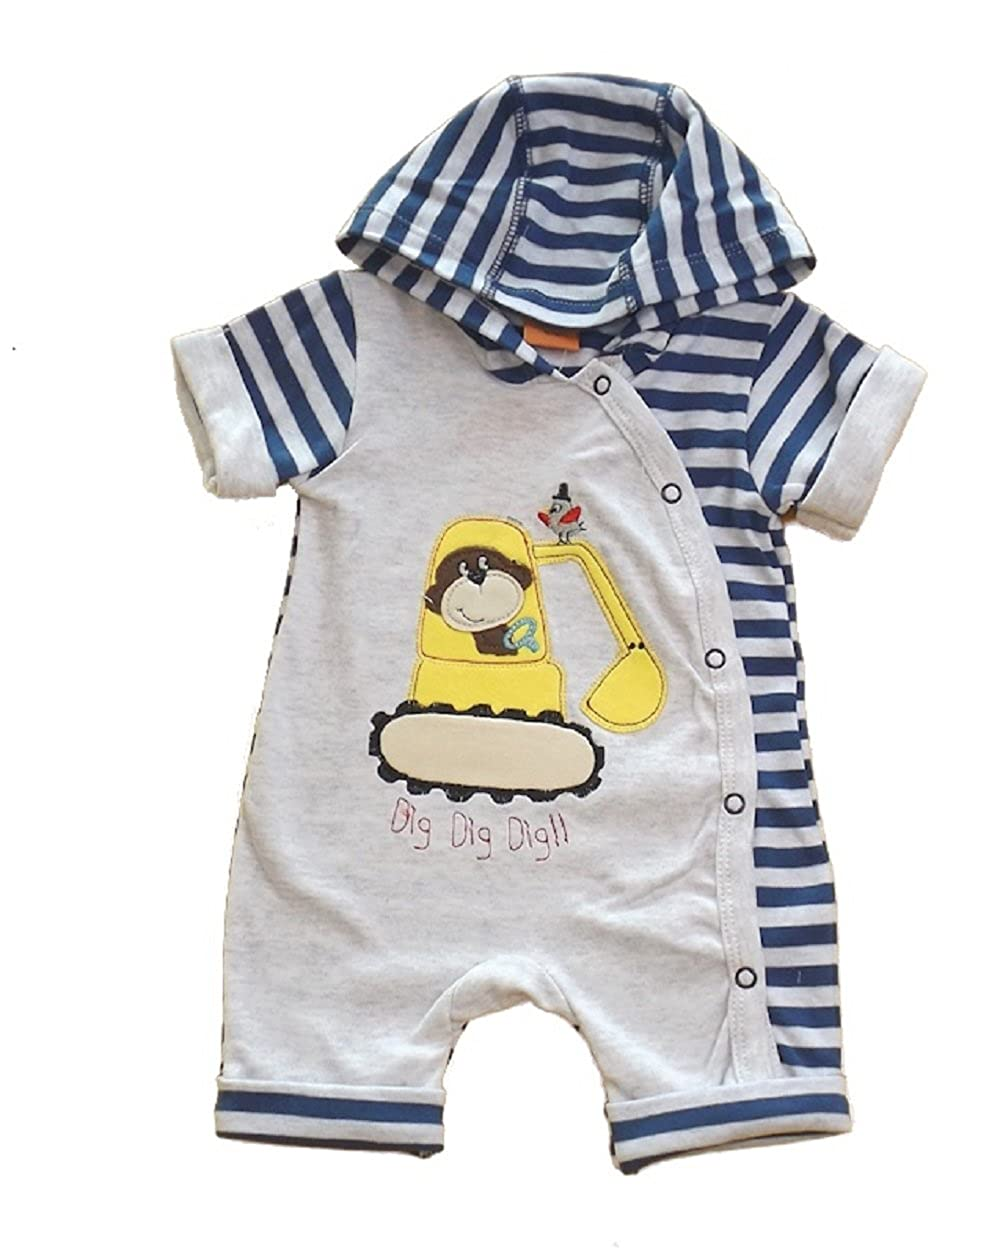 Mellow Be Cheeky Chimp Baby Boy Cute Little Hooded Romper with Digger and Chimp Applique in Grey and Navy Available for Ages Newborn to 6 Months.